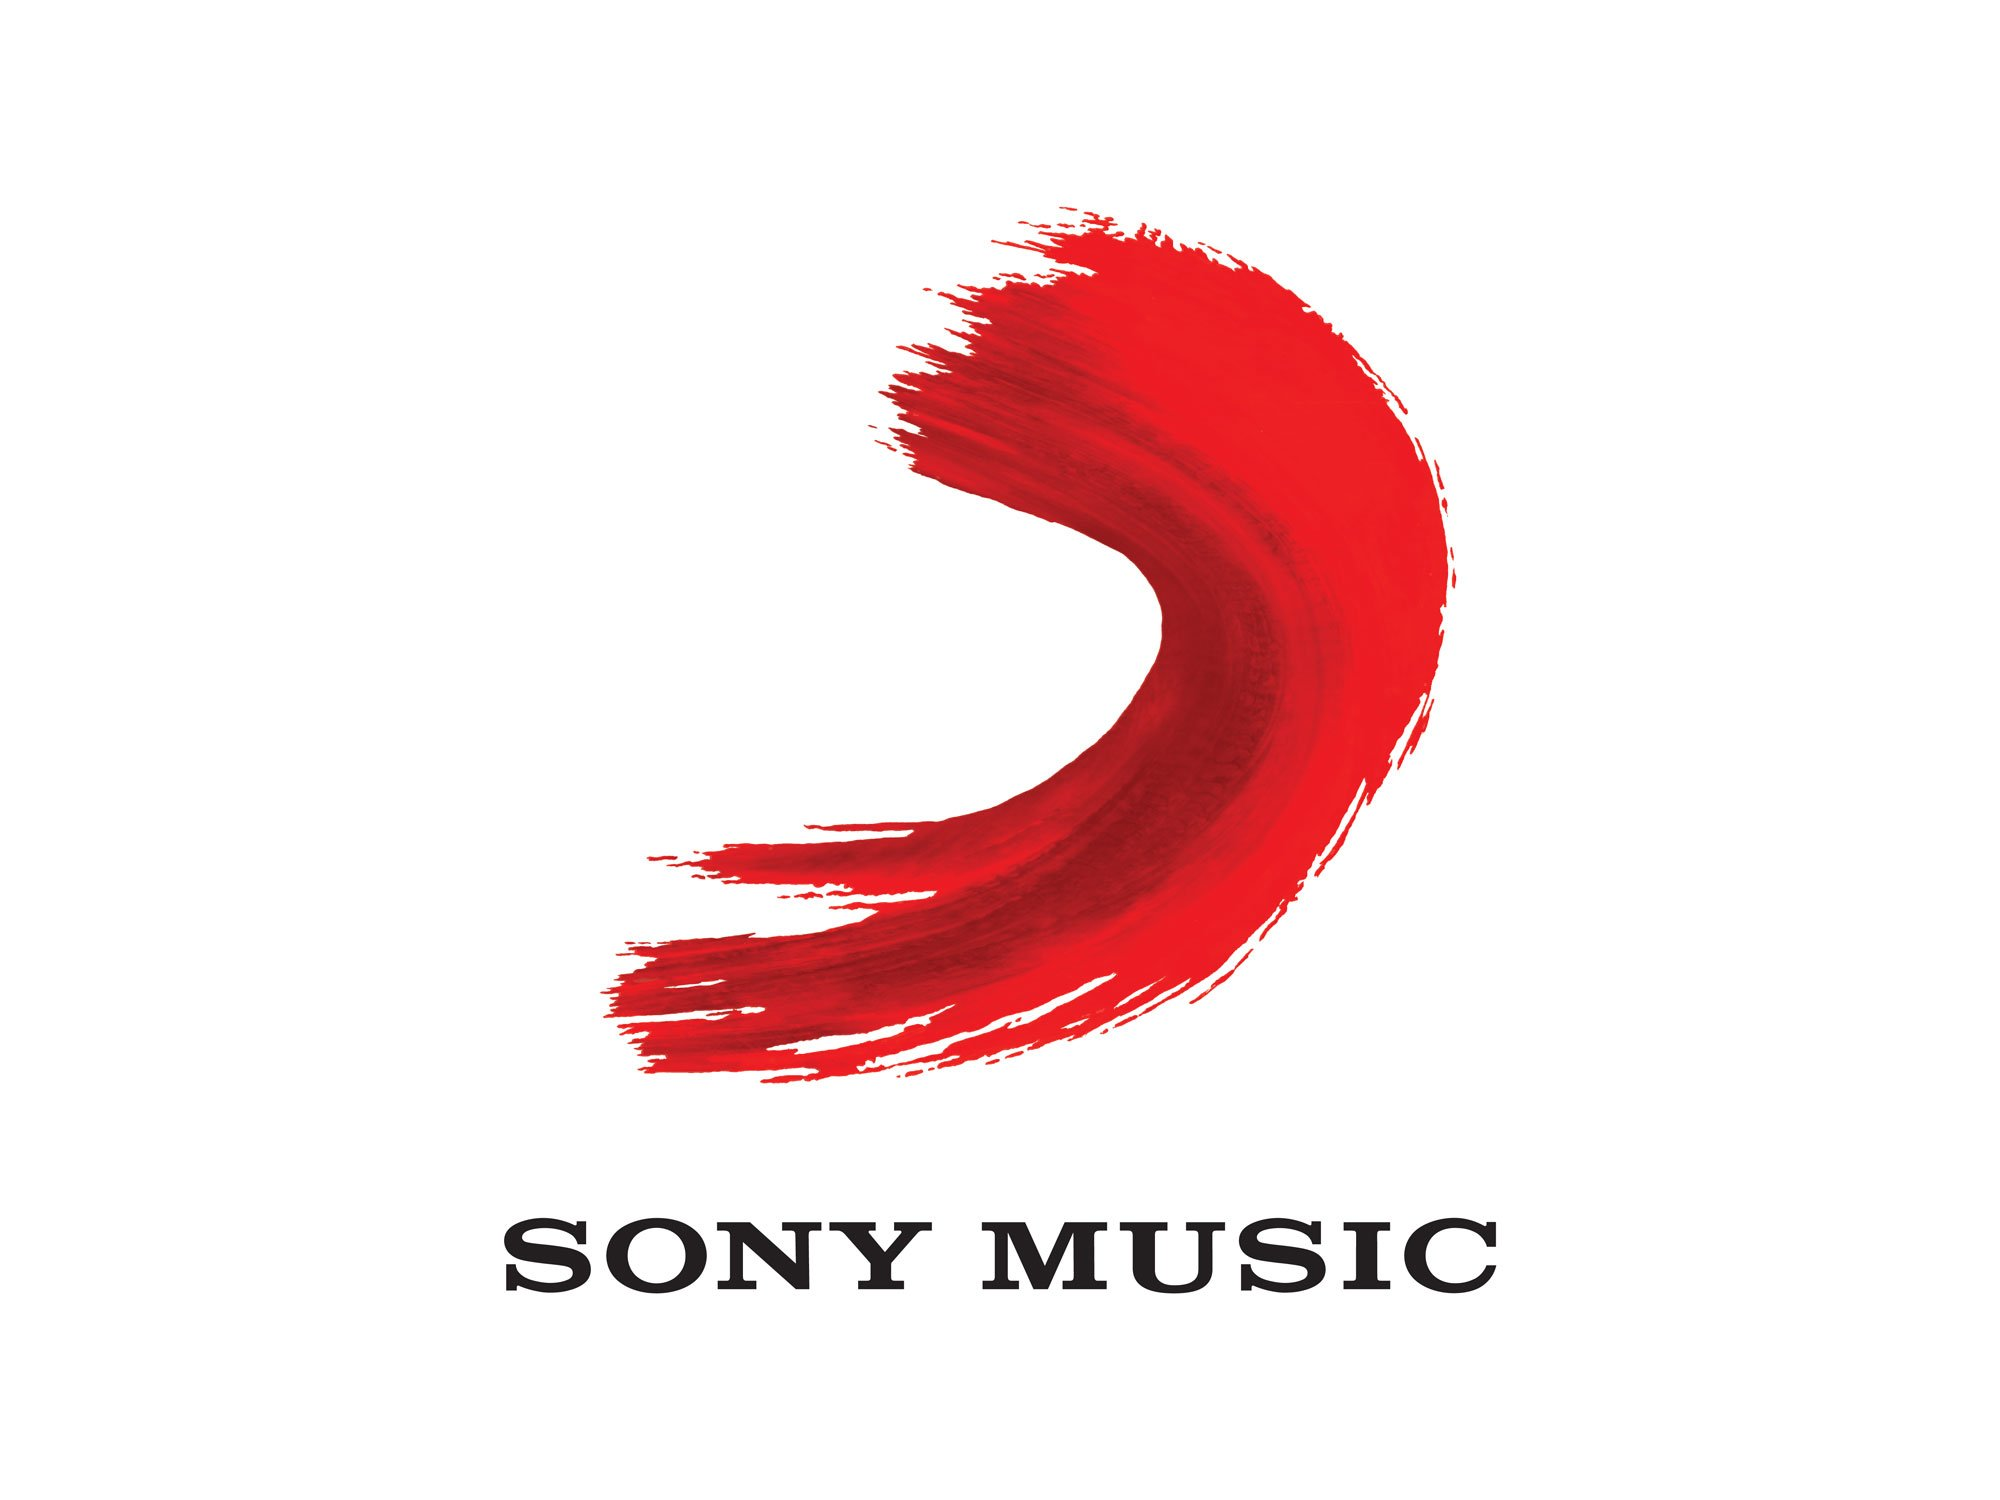 Sony Music Official Website